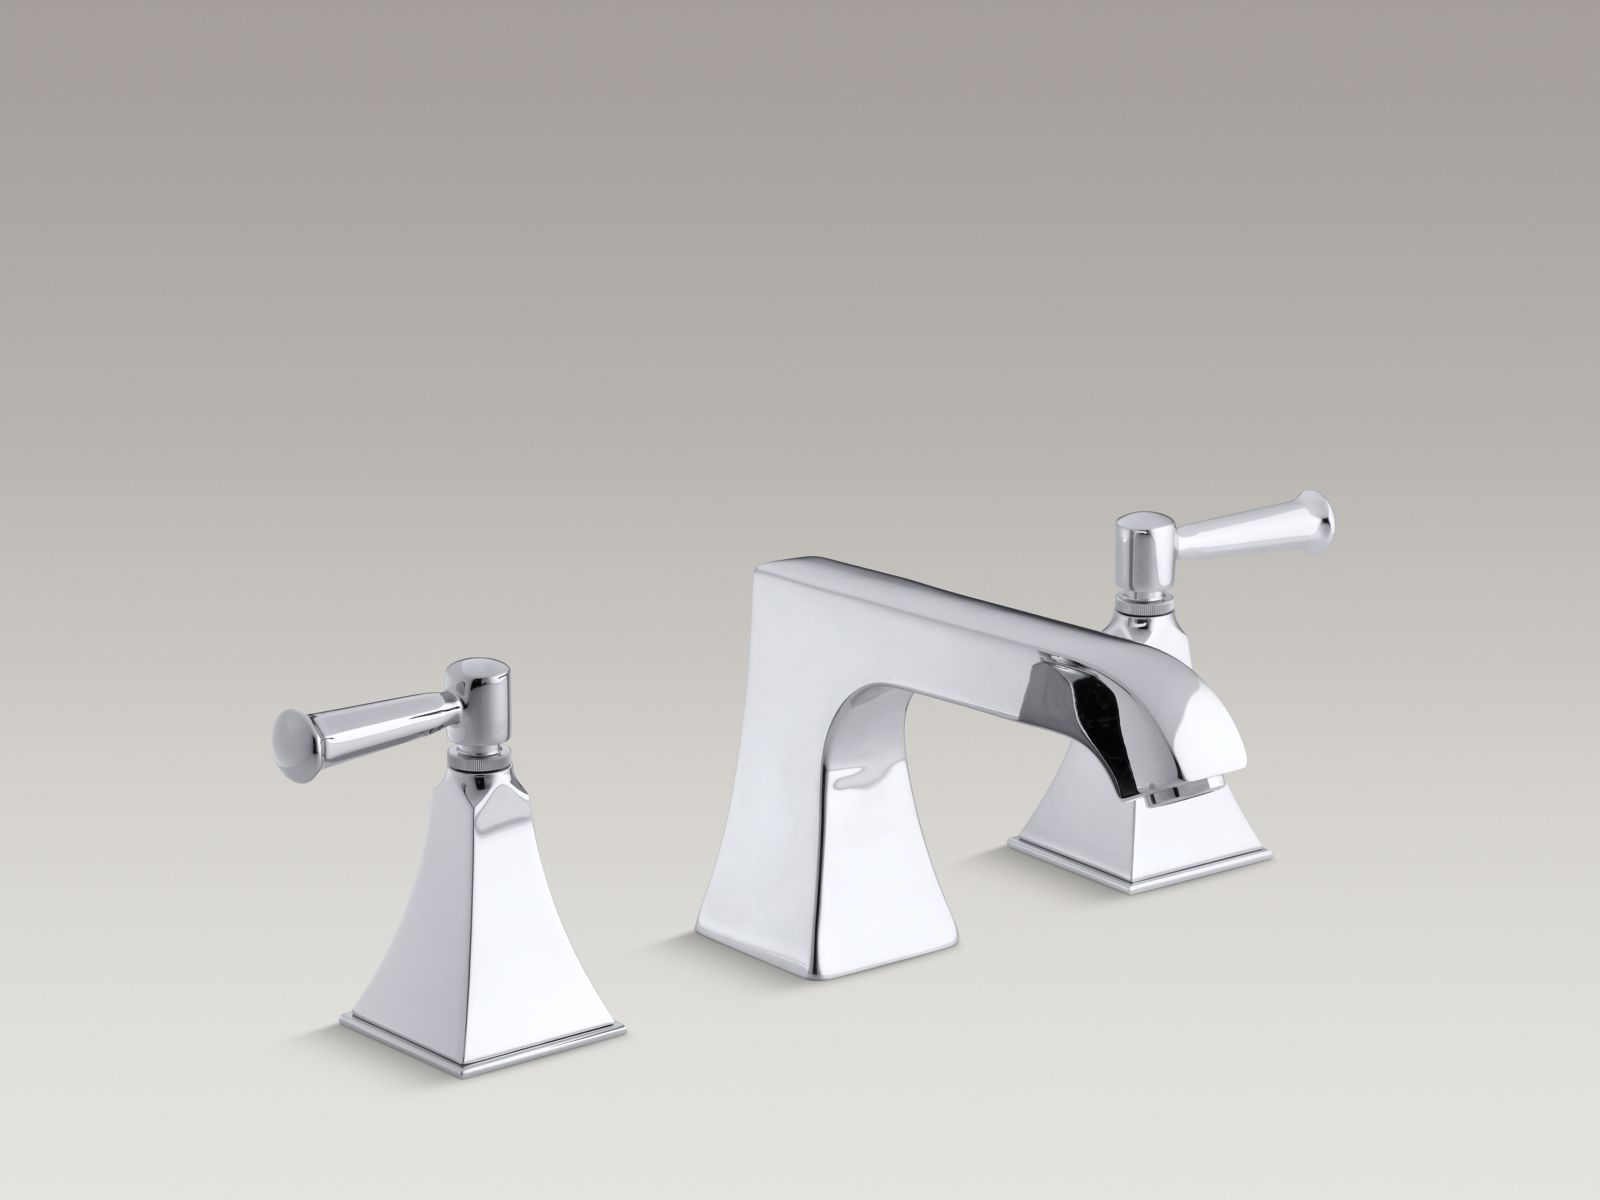 Kohler Memoirs® K-T469-4S-CP Stately deck-mount bath faucet trim with non-diverter spout and lever handles, valve not included Polished Chrome